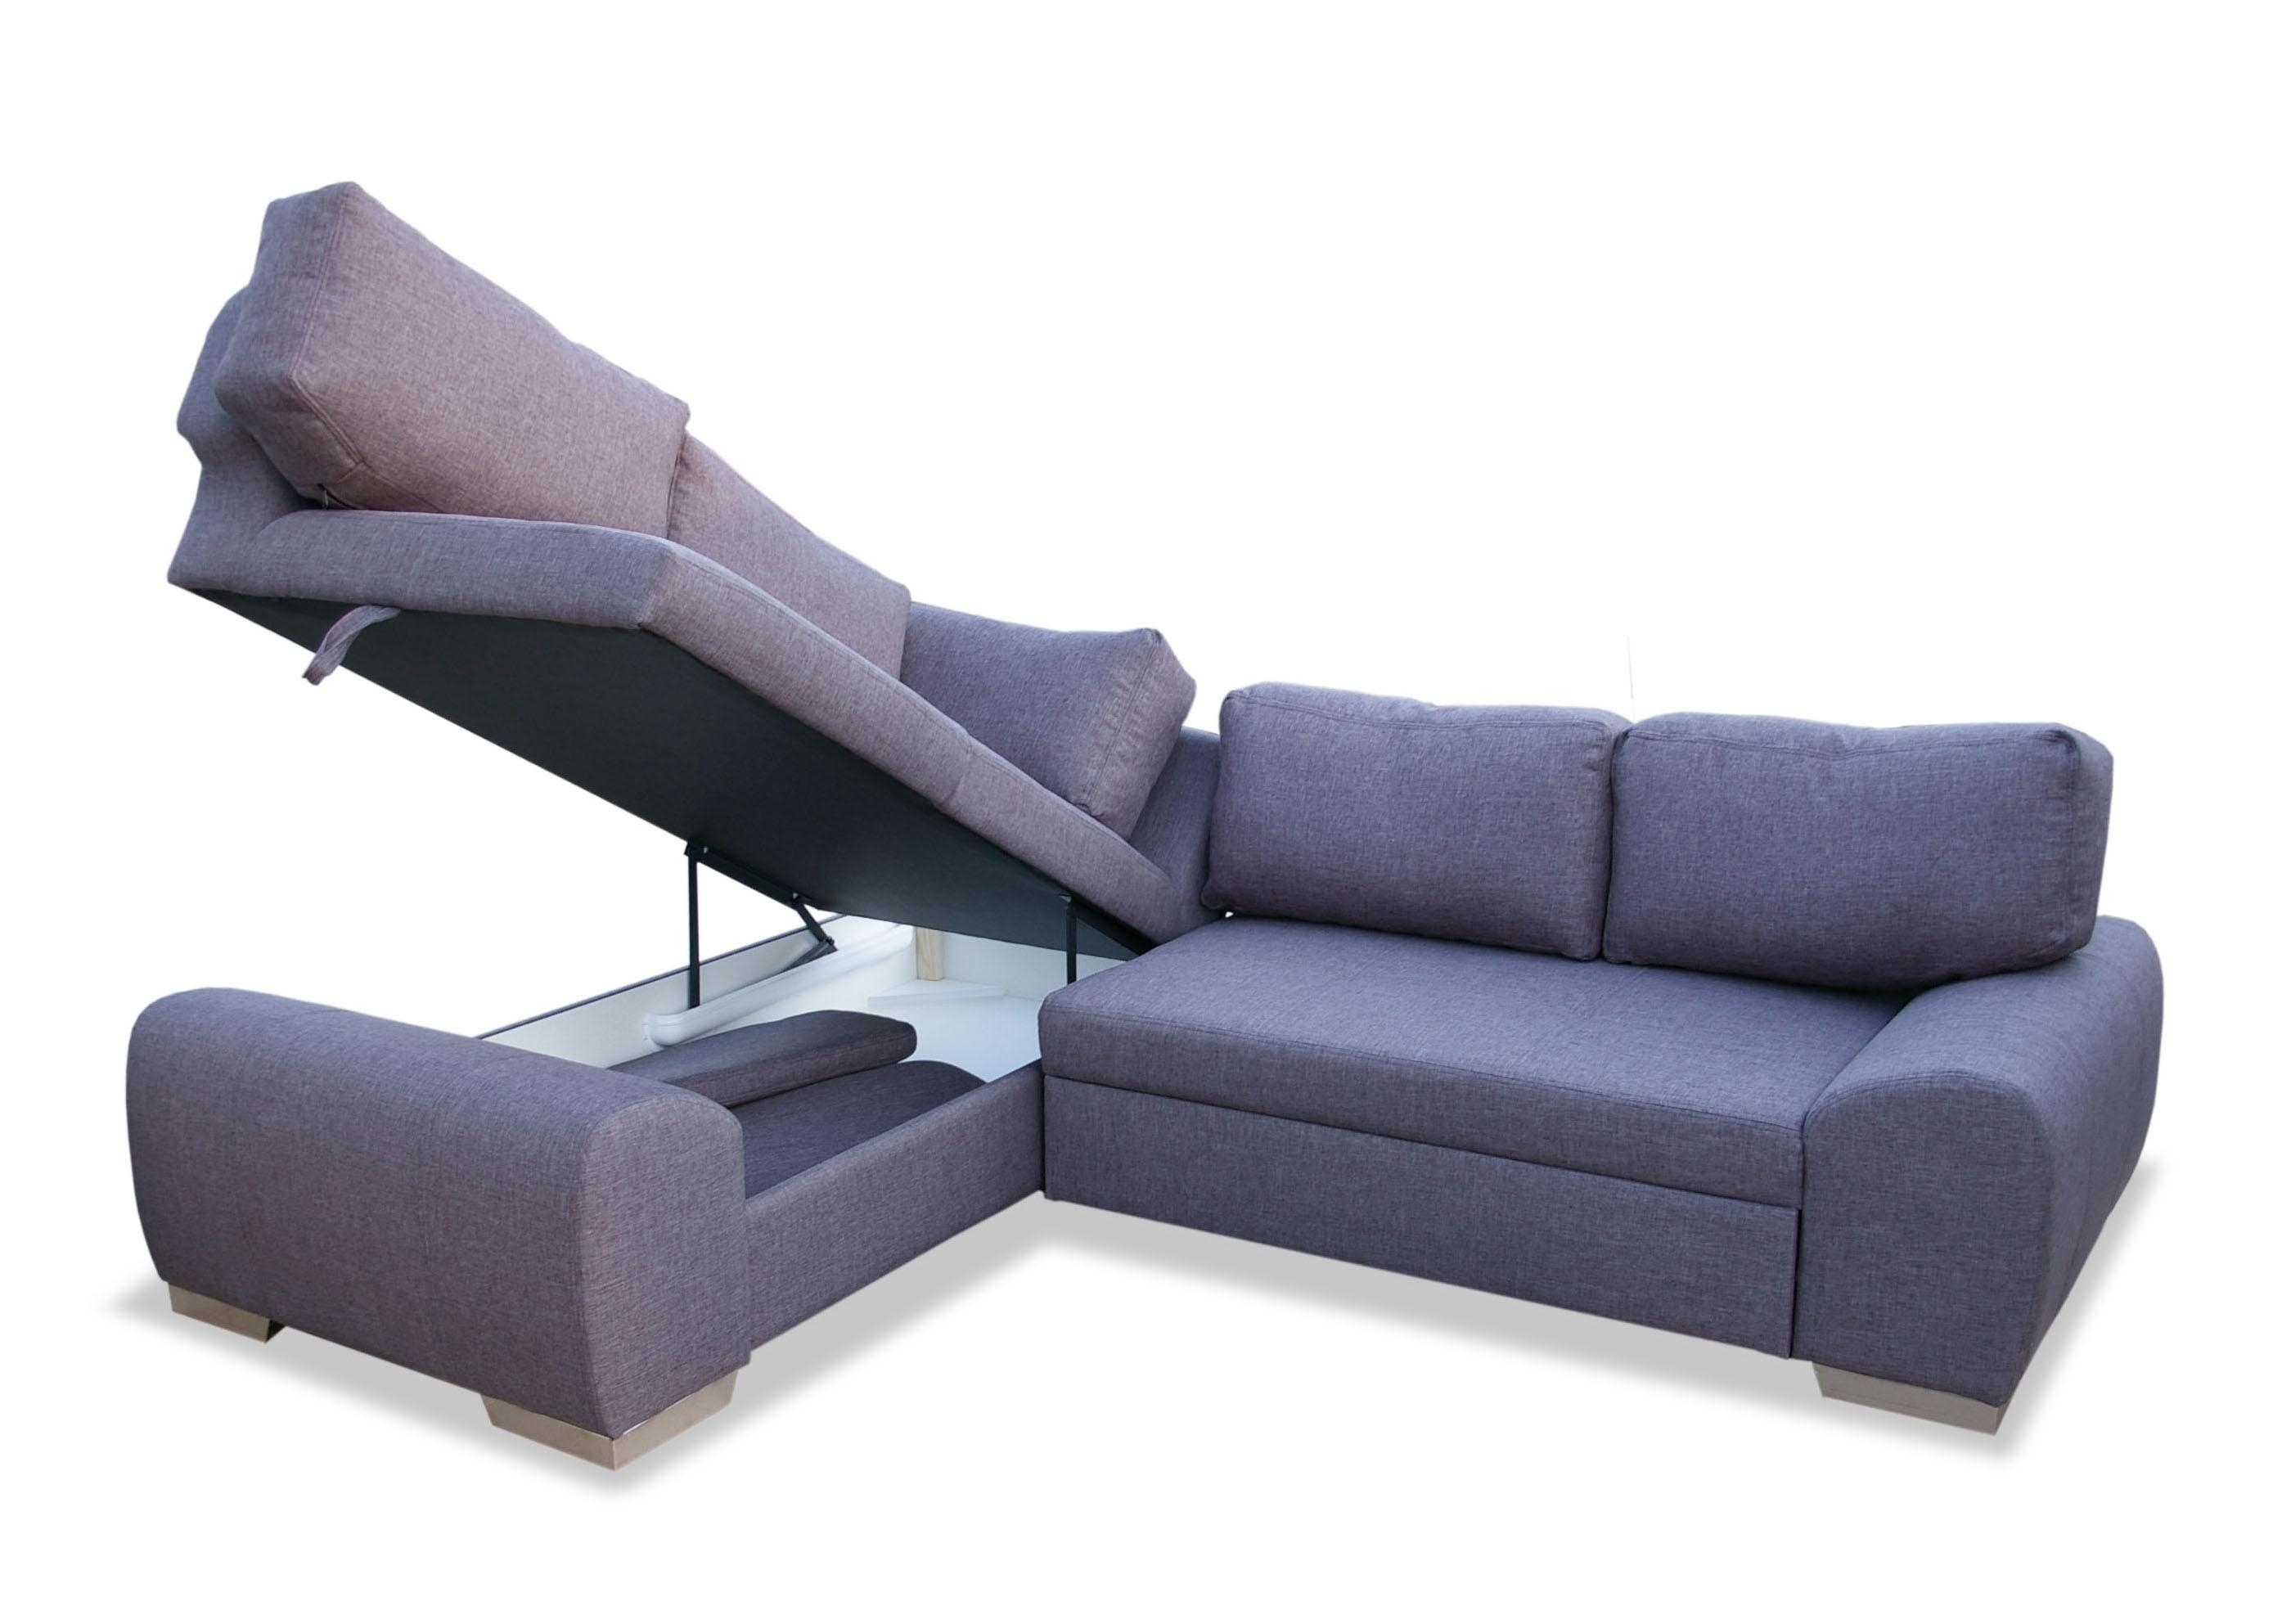 Sofa Bed Bar Shield | Sofa Gallery | Kengire Throughout Sofa Beds Bar Shield (View 17 of 20)